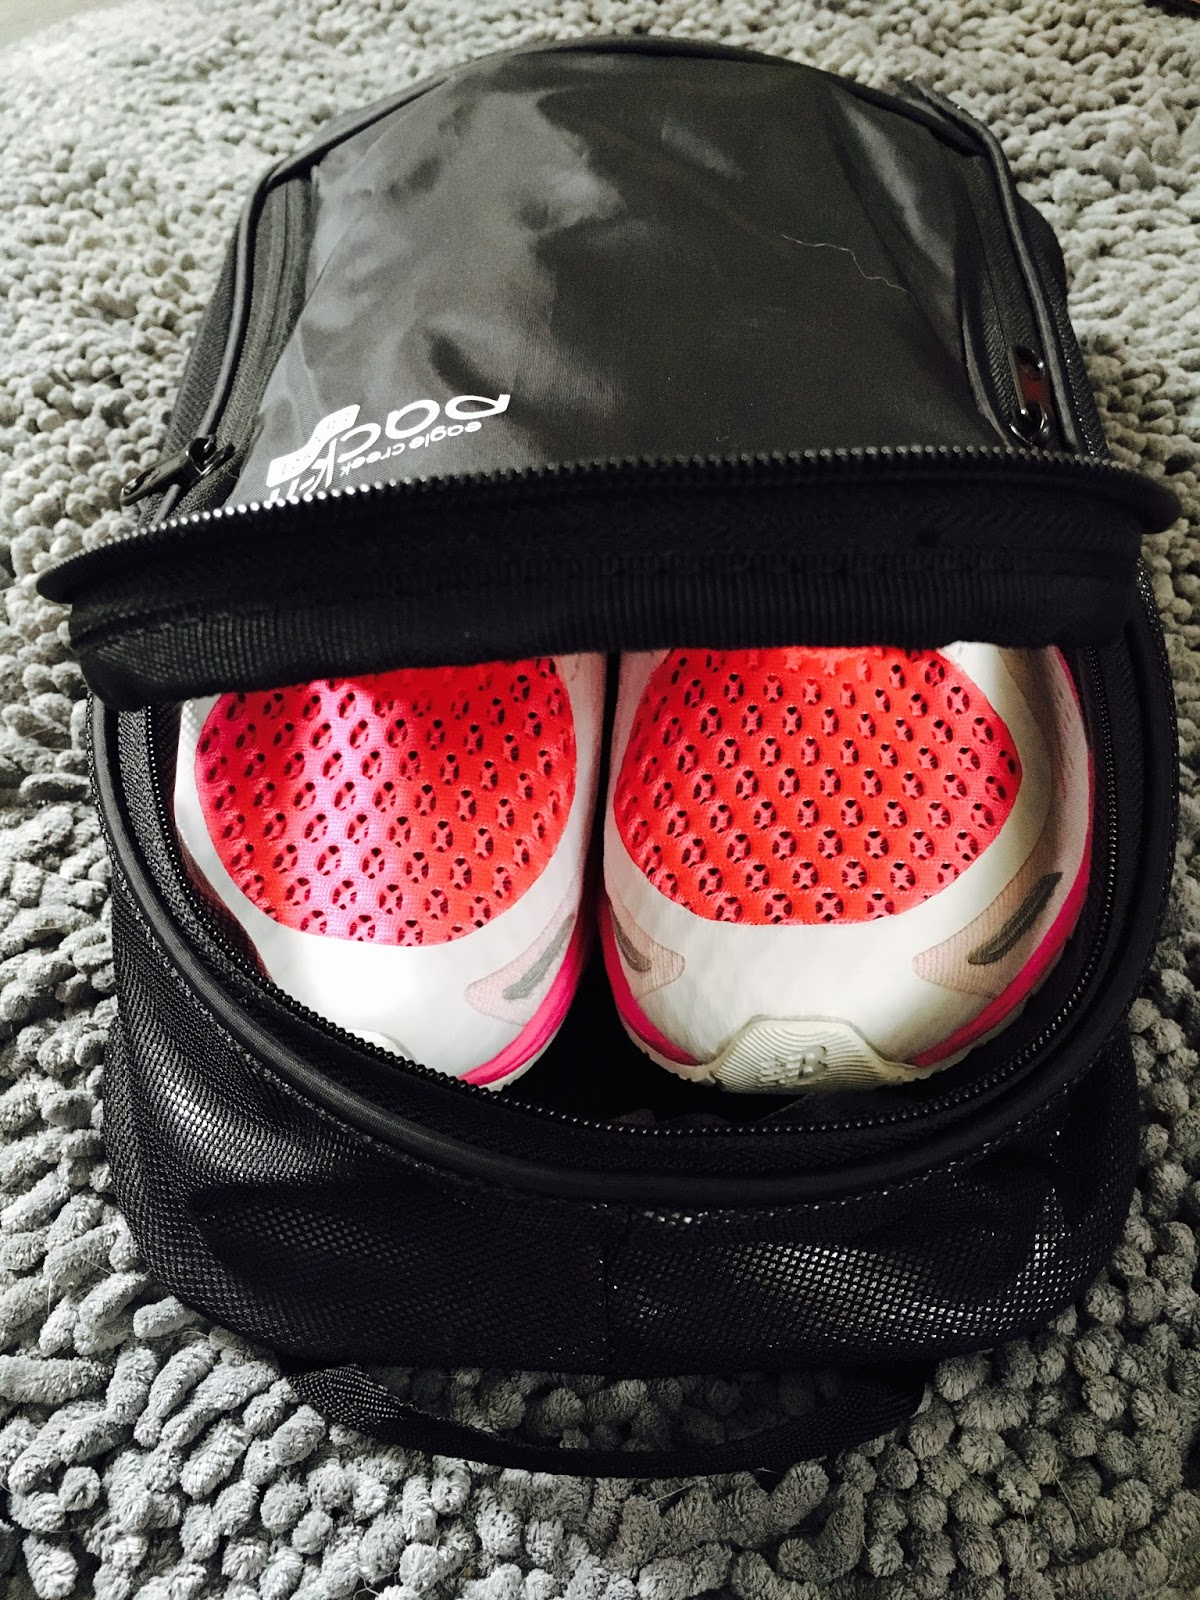 The Large Shoe Locker Fits Up To Men S Size 13 And Features A U Shape Zip Opening That Can Be Partially Unzipped At Top For Ventilation